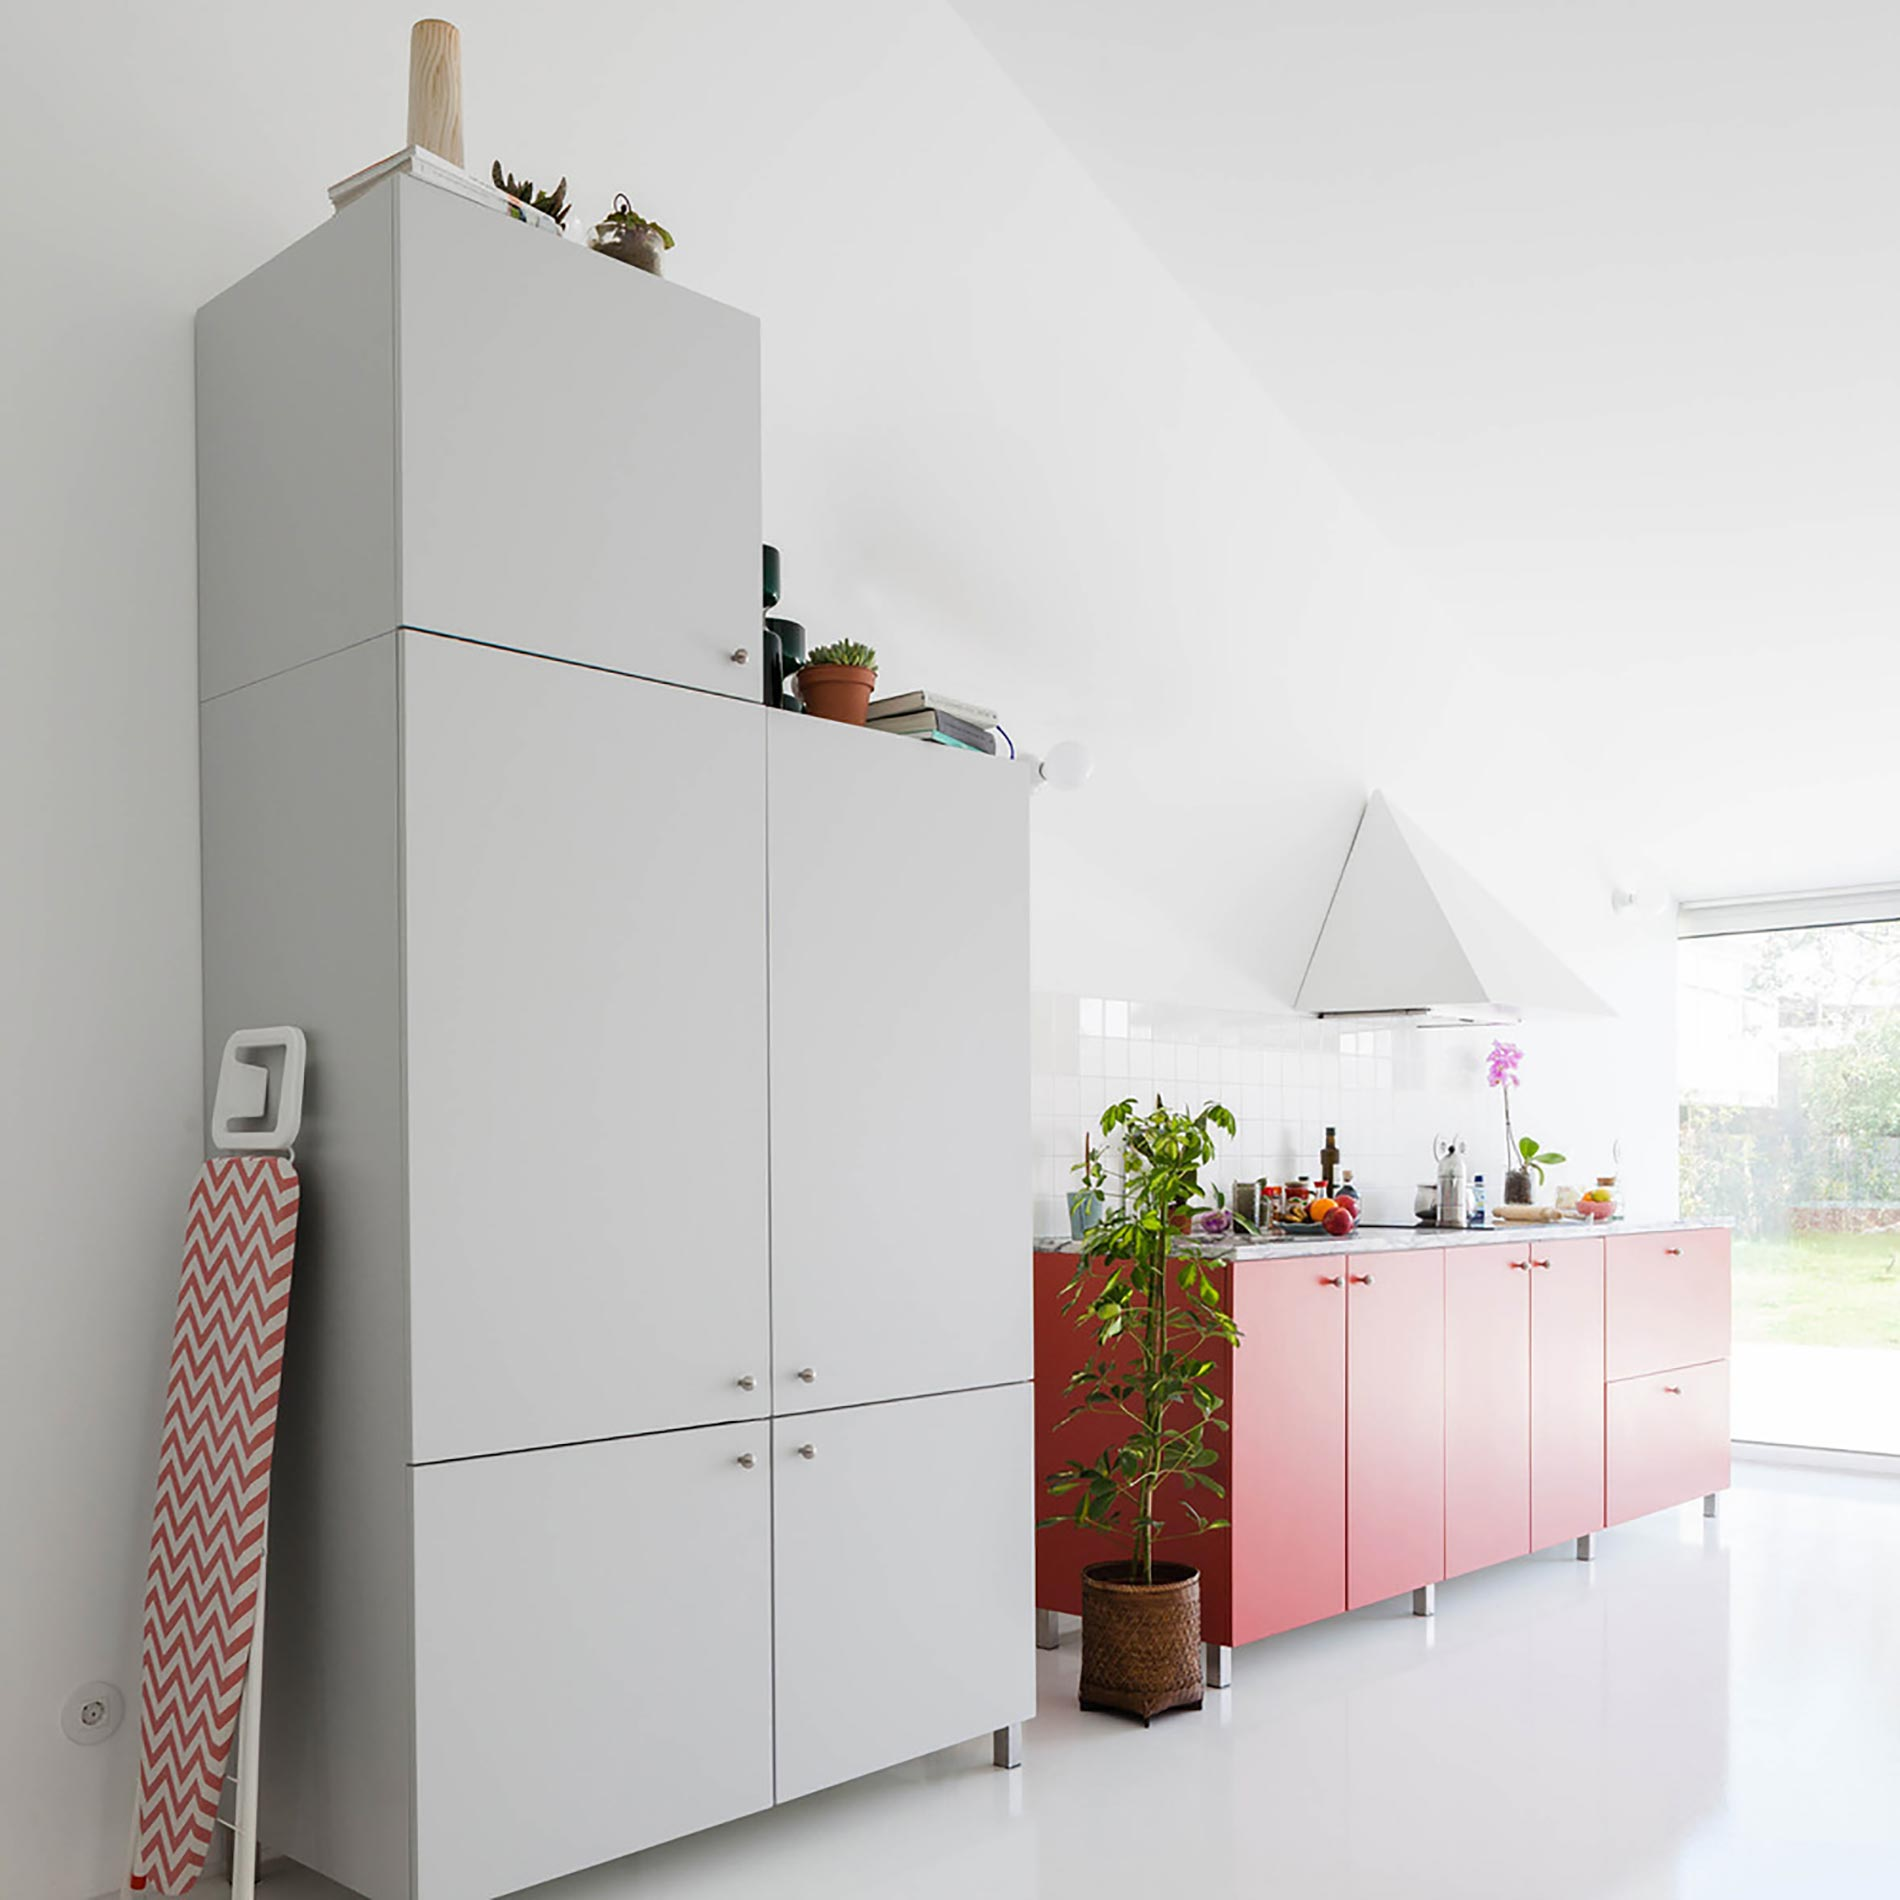 home-tour-fala-atelier-cucina-e-mobile